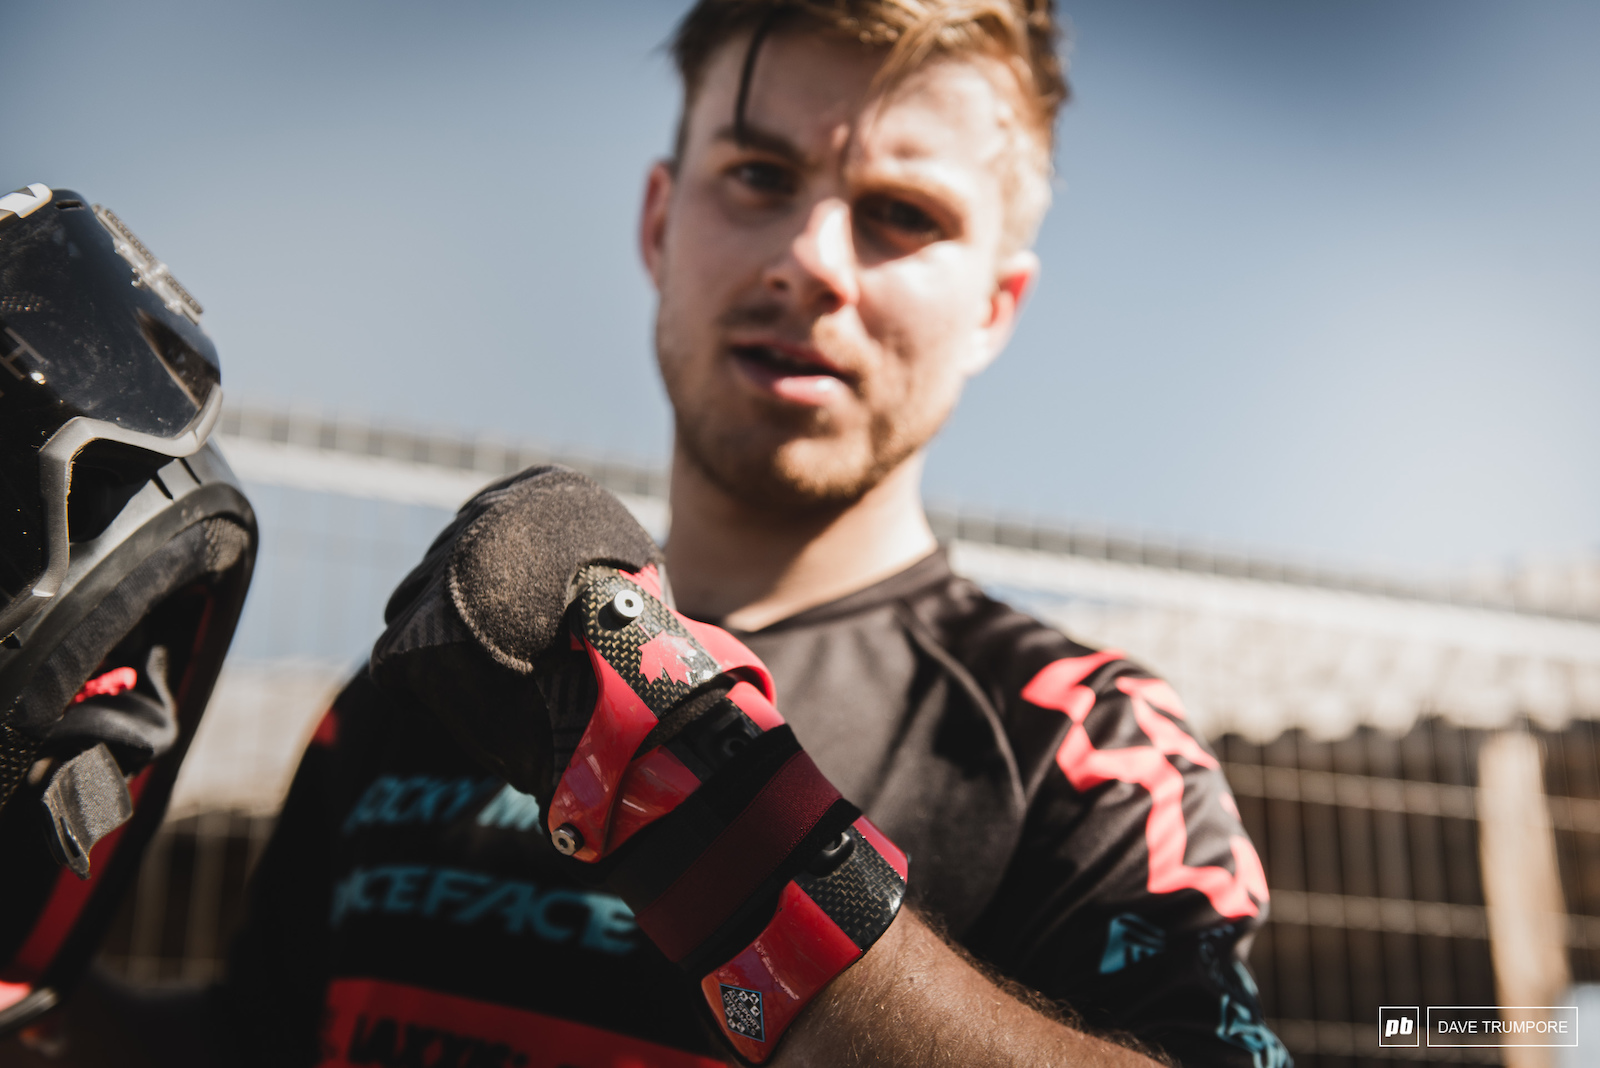 Just 5 weeks after scaphoid surgery Remi Gauvin is back at it and racing the rowdiest EWS to date.